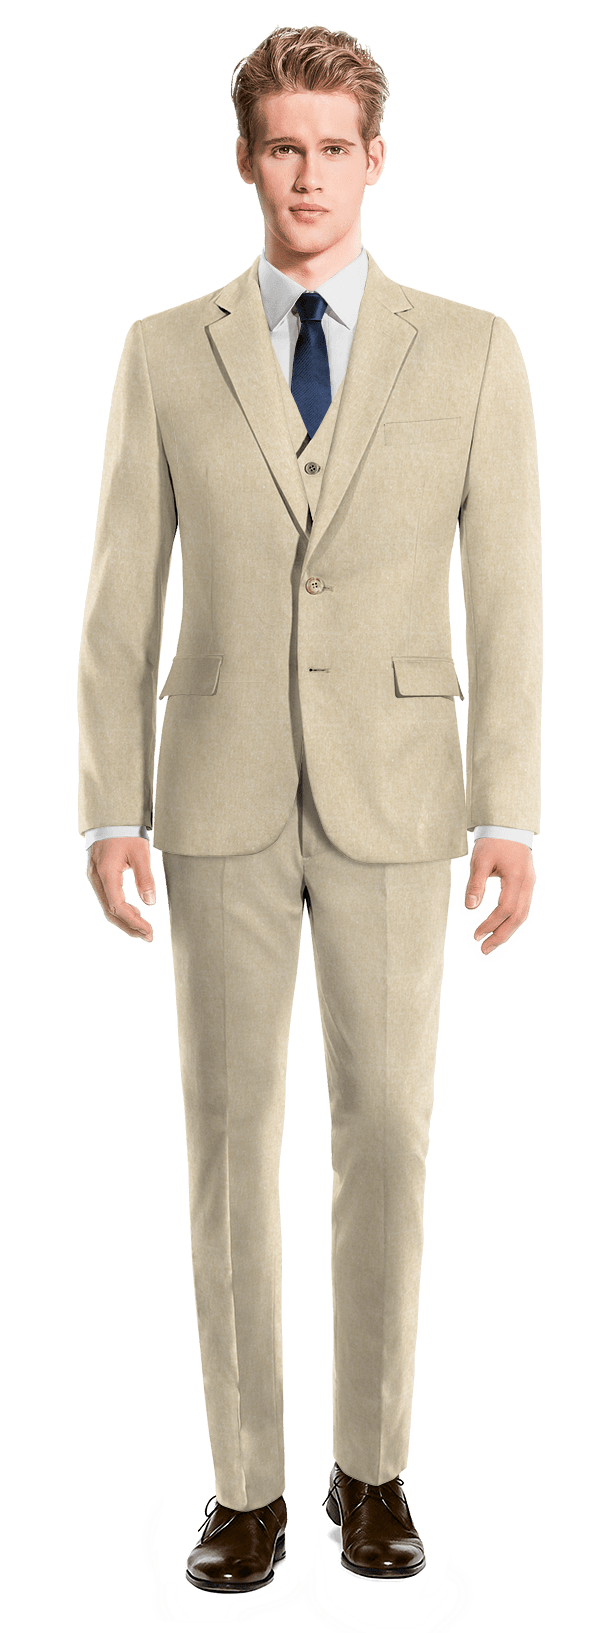 Perry Ellis 3-piece suit separates for men are the favorite pick for guys of all levels of sophistication. Take your choice of iridescent, chambray, check, textured, khaki, heathered, linen, jacquard or solid.